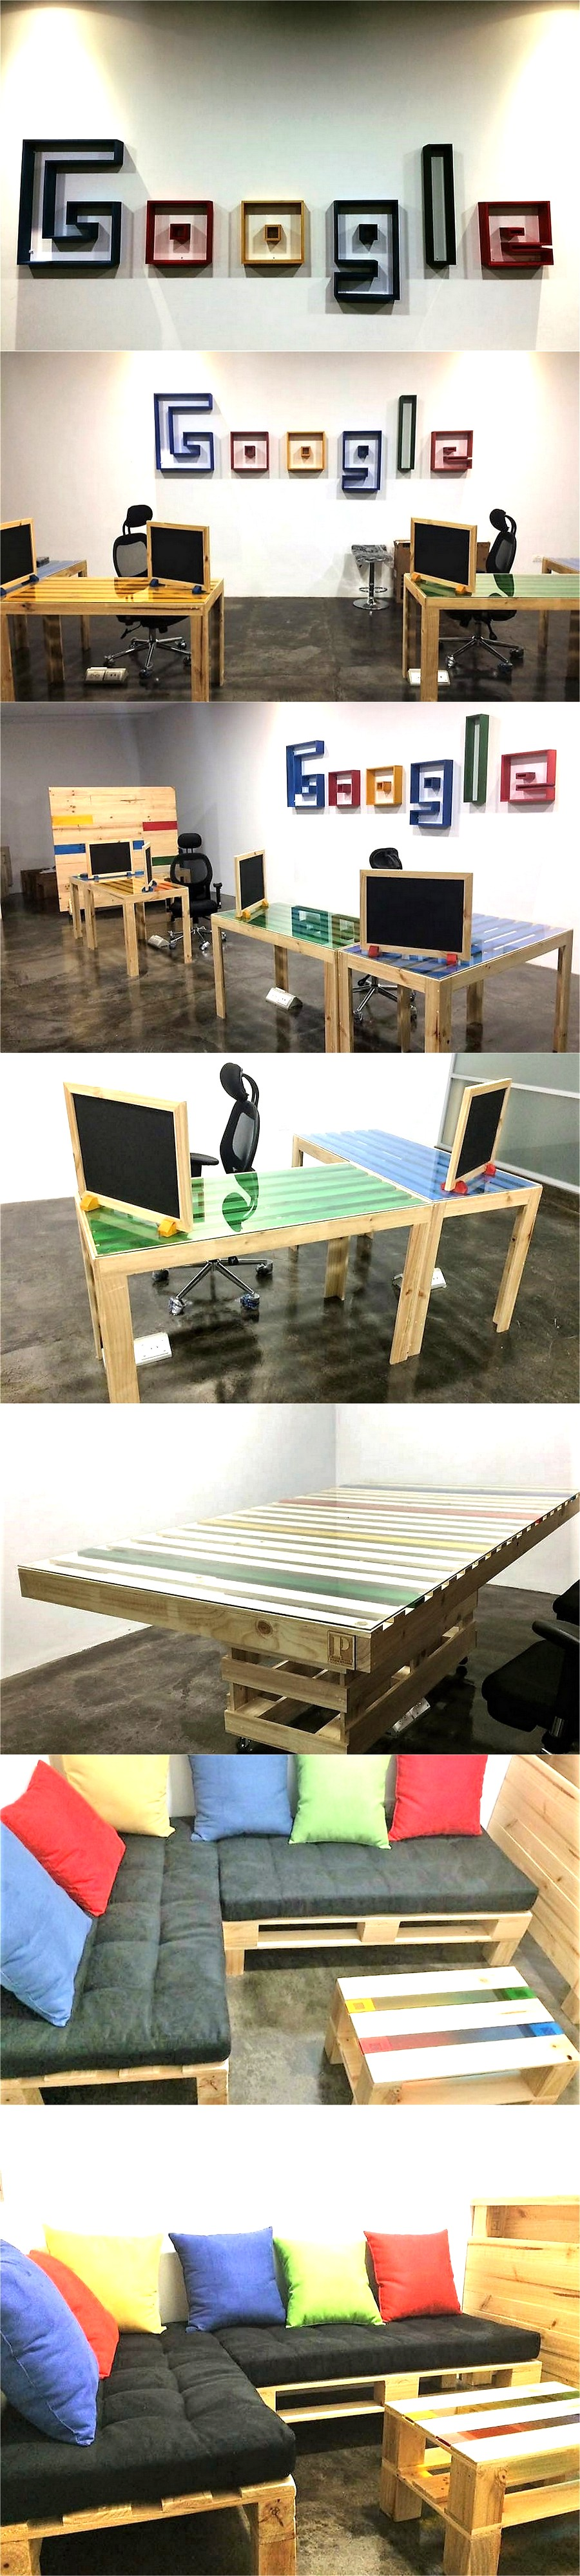 Office Furniture Made With Pallets